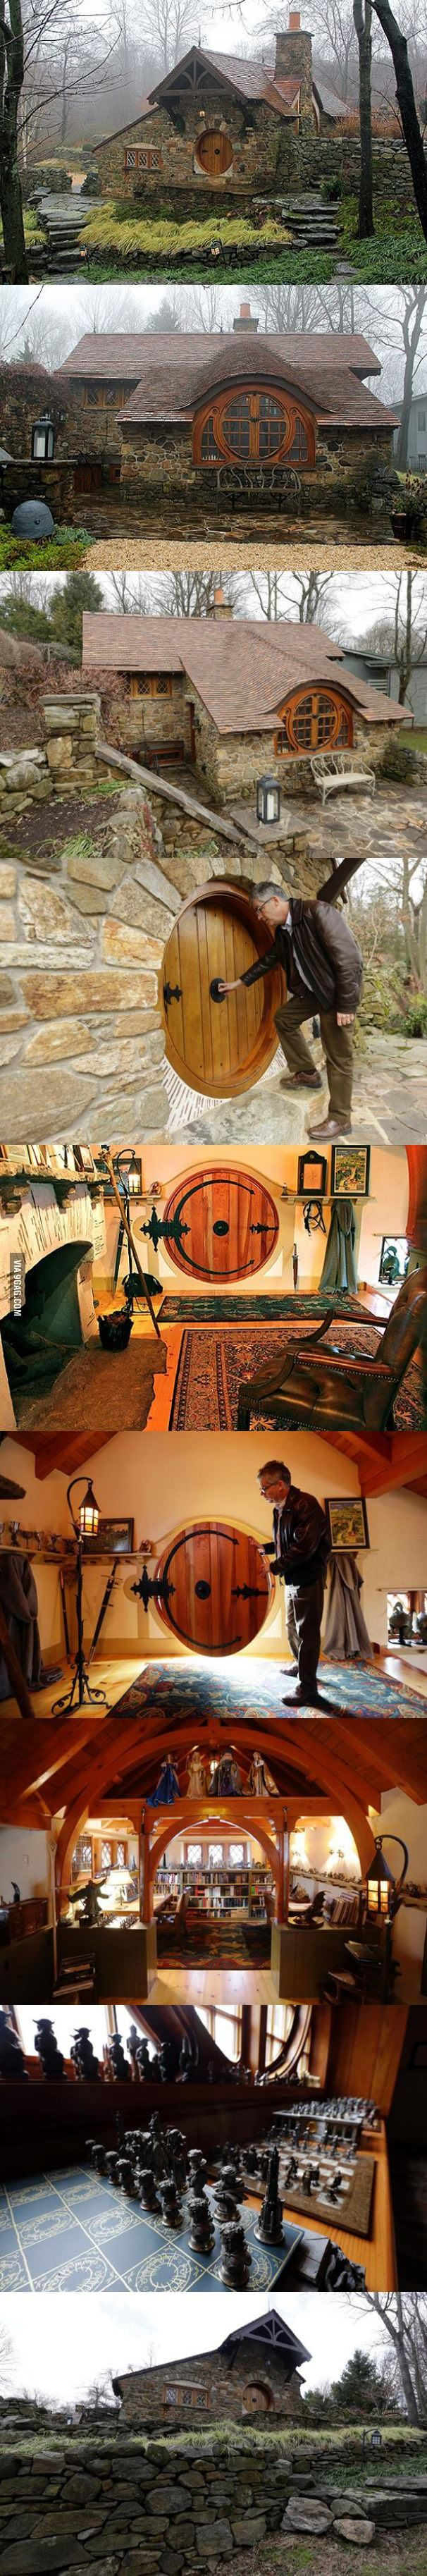 Beautiful real-life Hobbit home